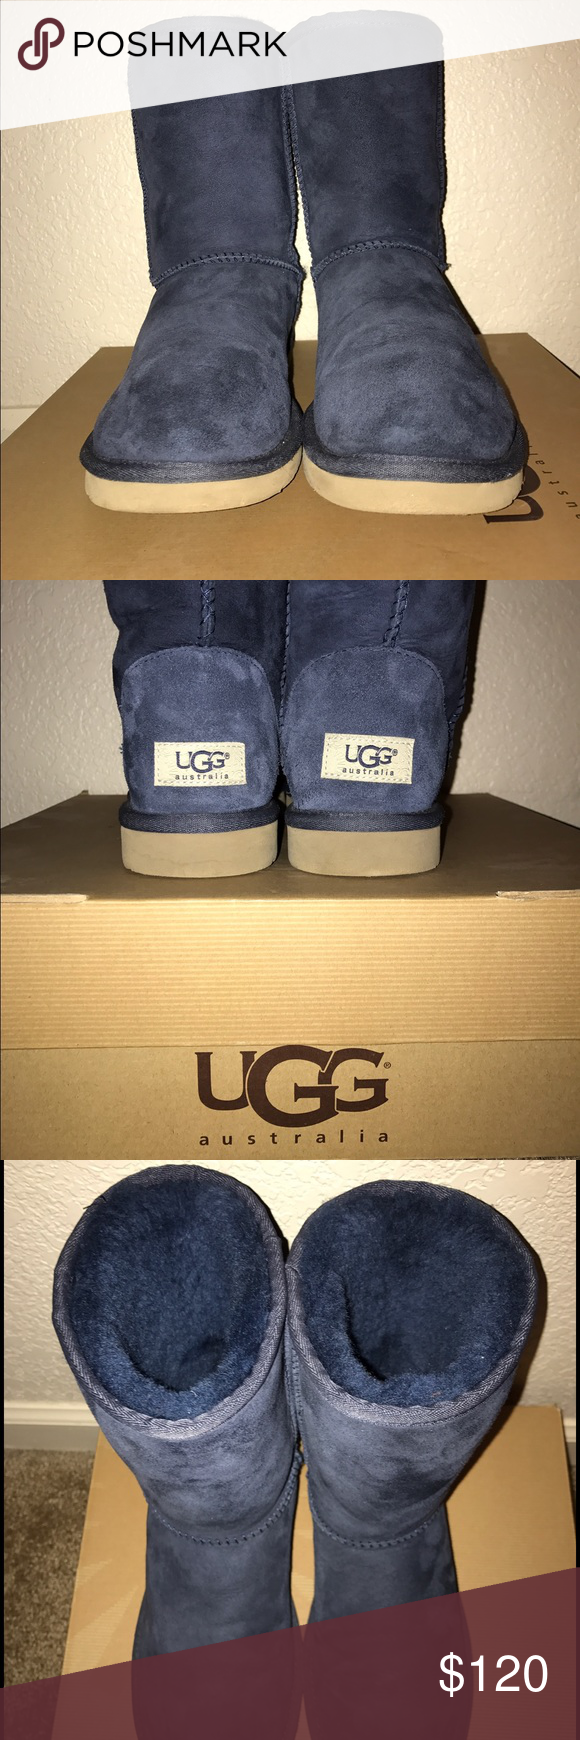 Women's Classic ll Short Uggs (Navy) Brand new Uggs! No tears nor rips. New without tags. Does not come with box. NWOB. UGG Shoes Winter & Rain Boots